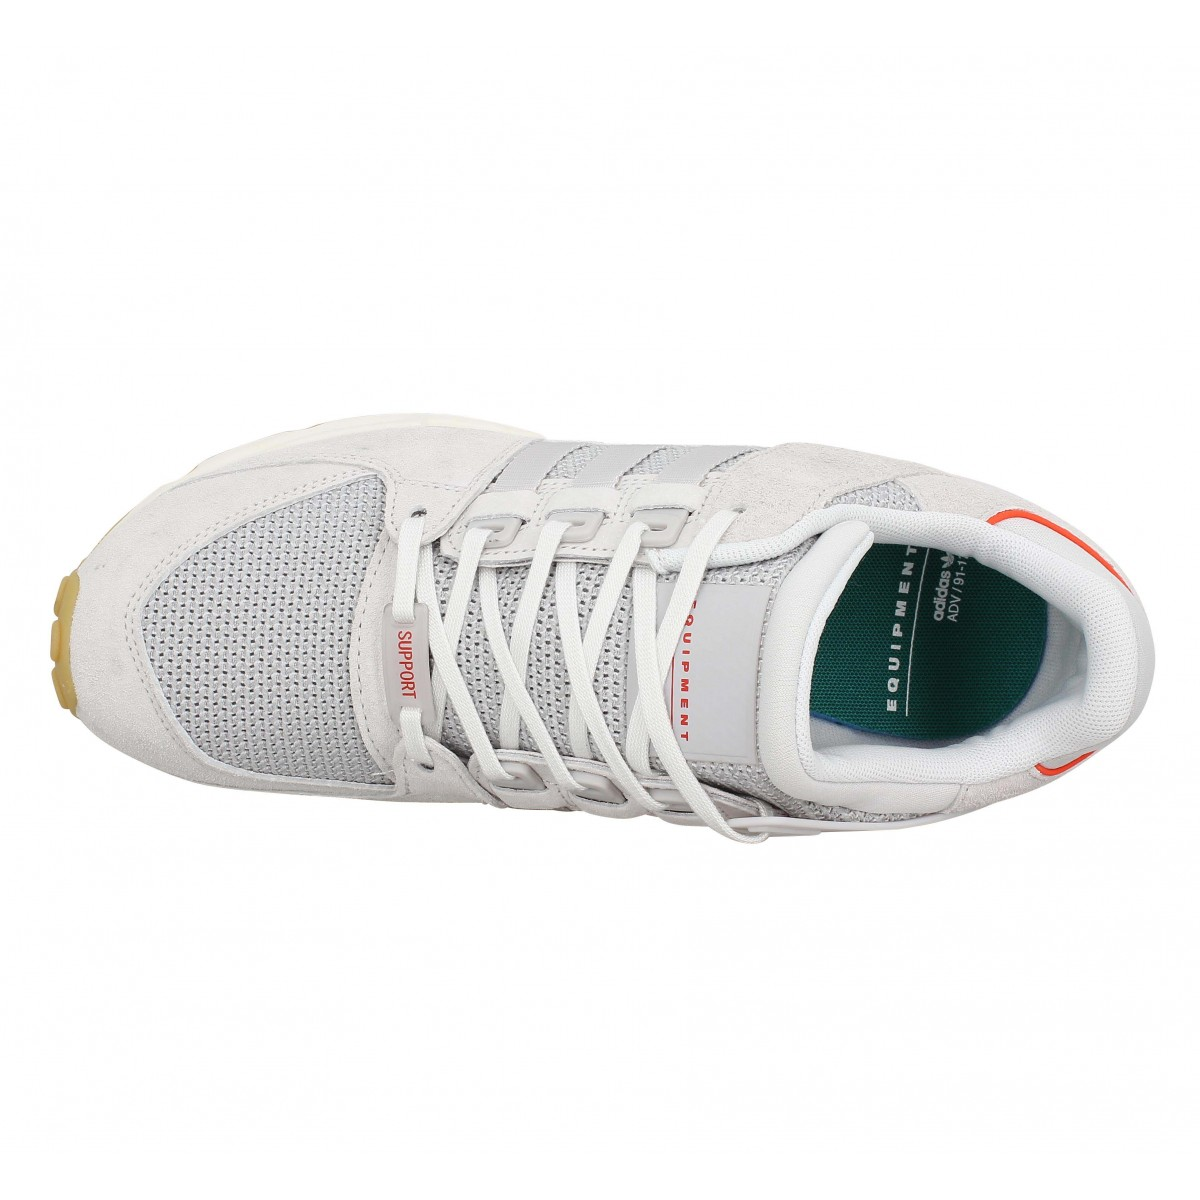 ADIDAS EQT Support RF toile Homme Gris